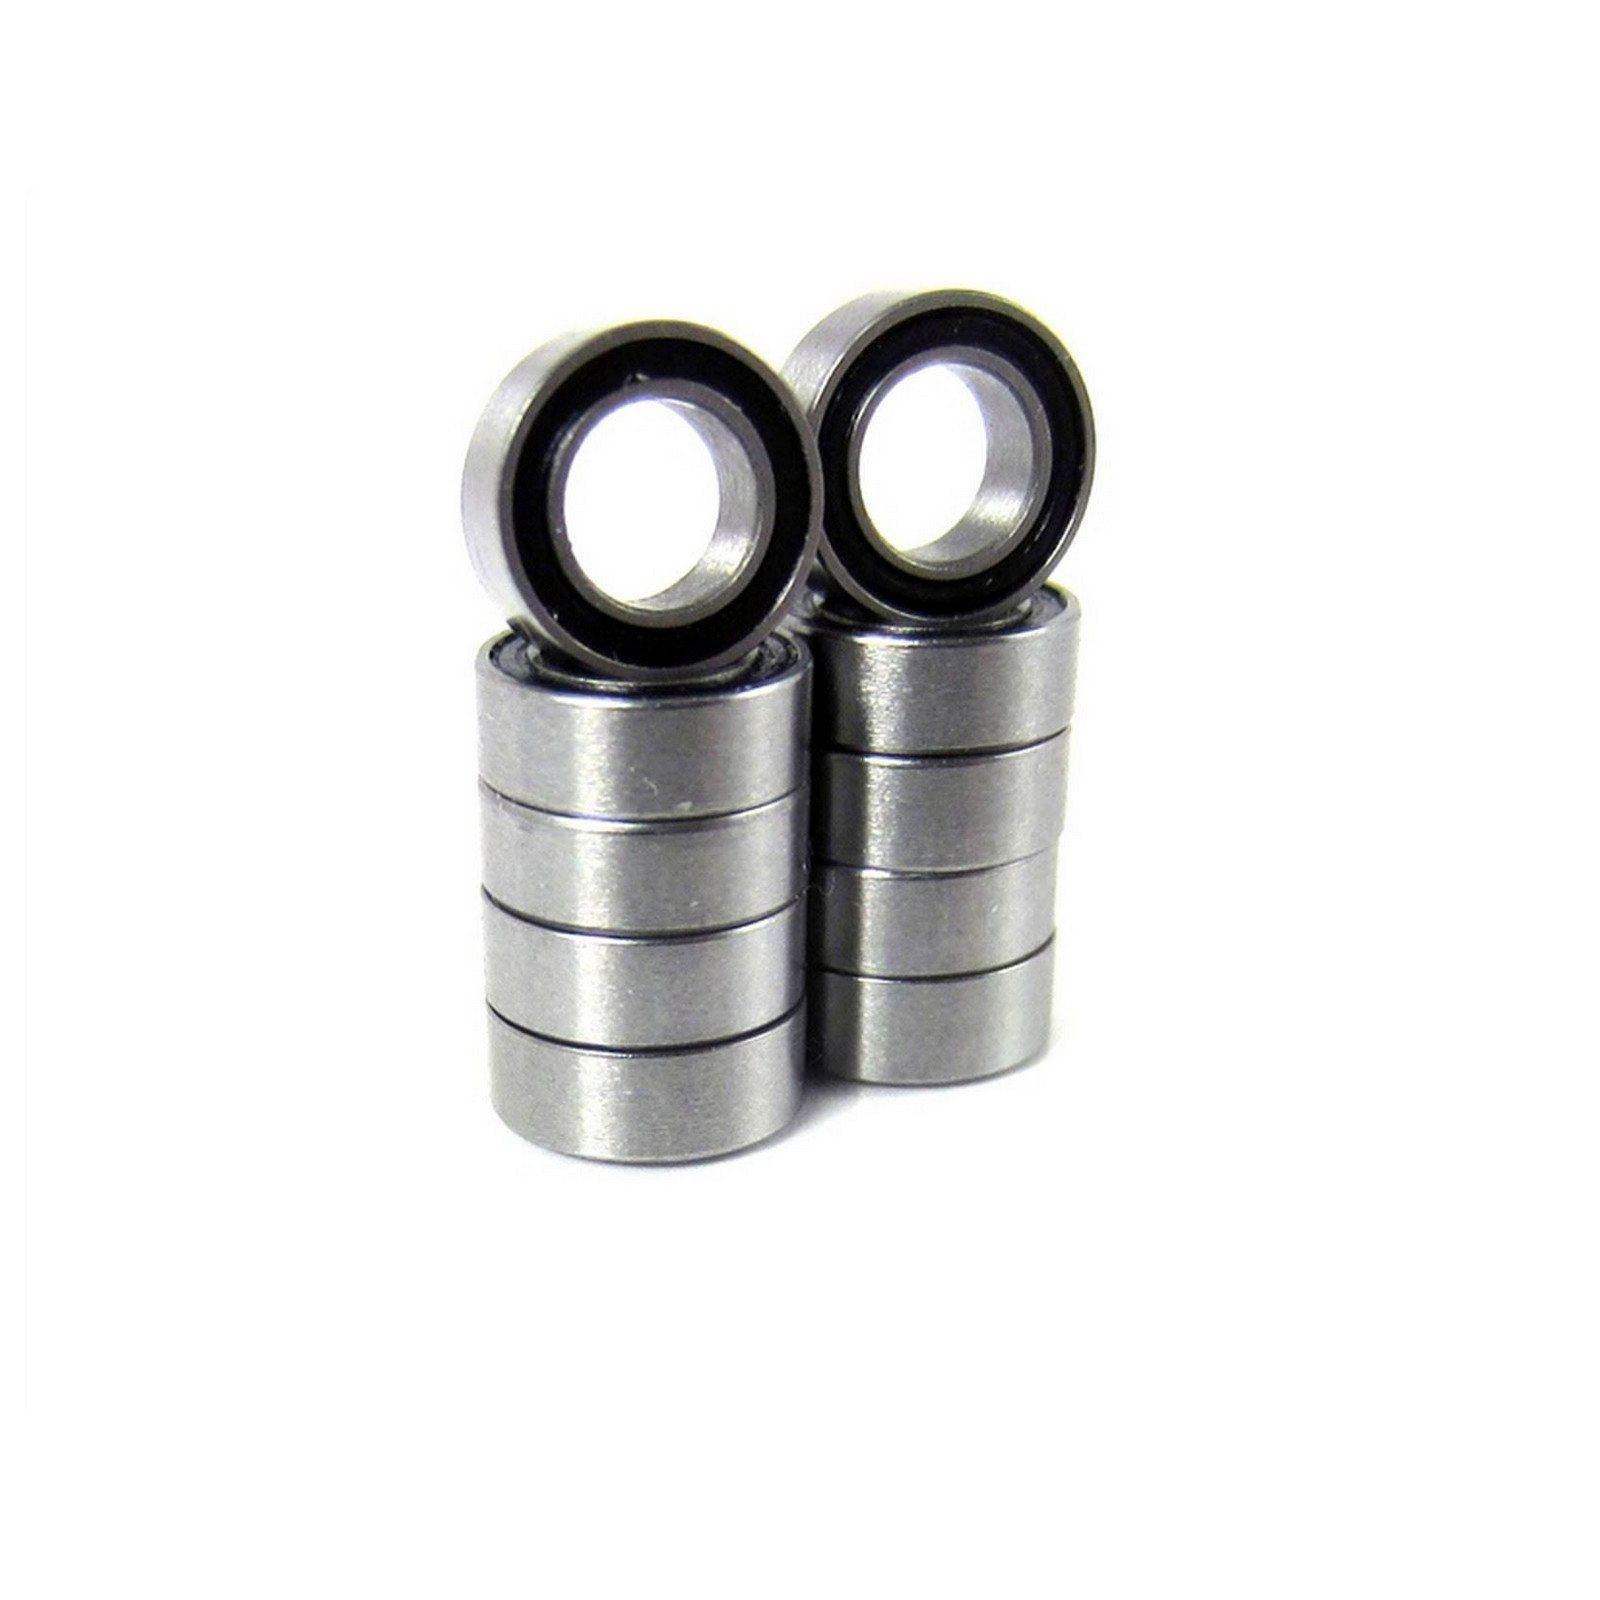 TRB RC 4x7x2.5mm Precision Ball Bearings ABEC 3 Rubber Sealed (10) - trb-rc-bearings